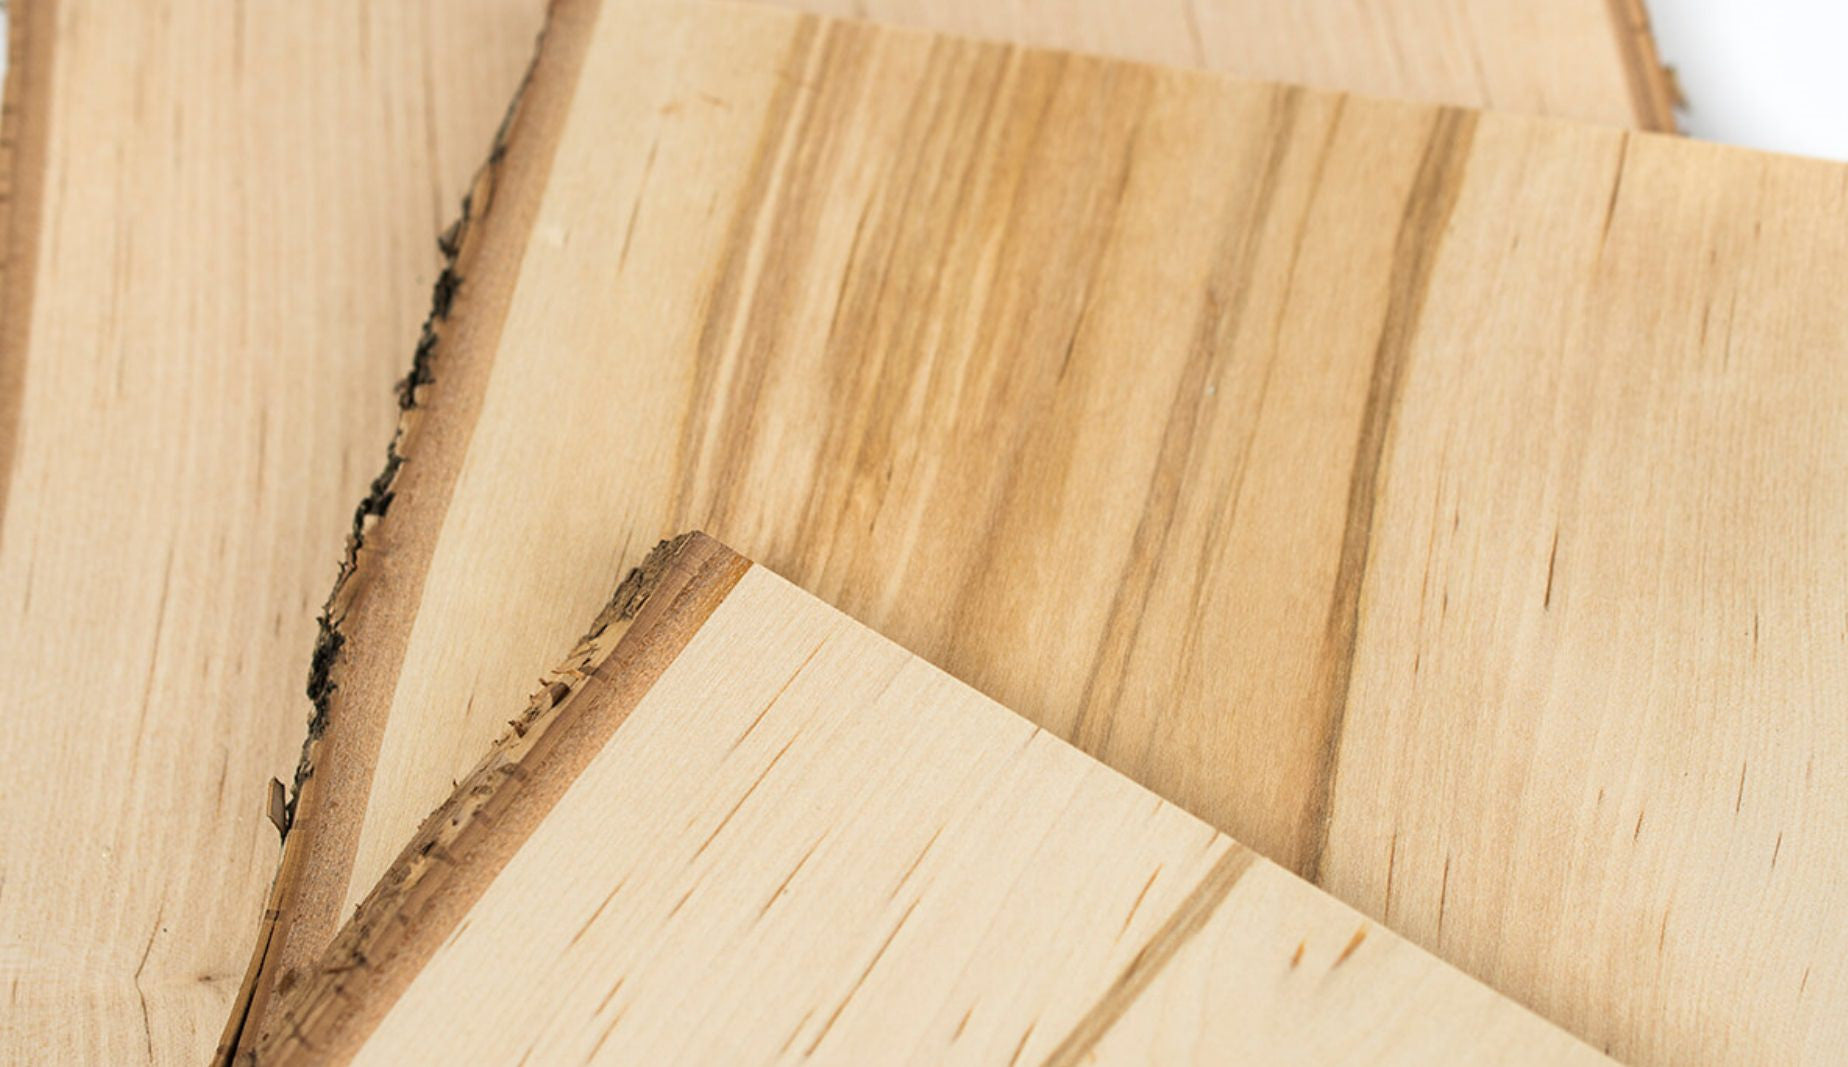 Birch wood used as building material